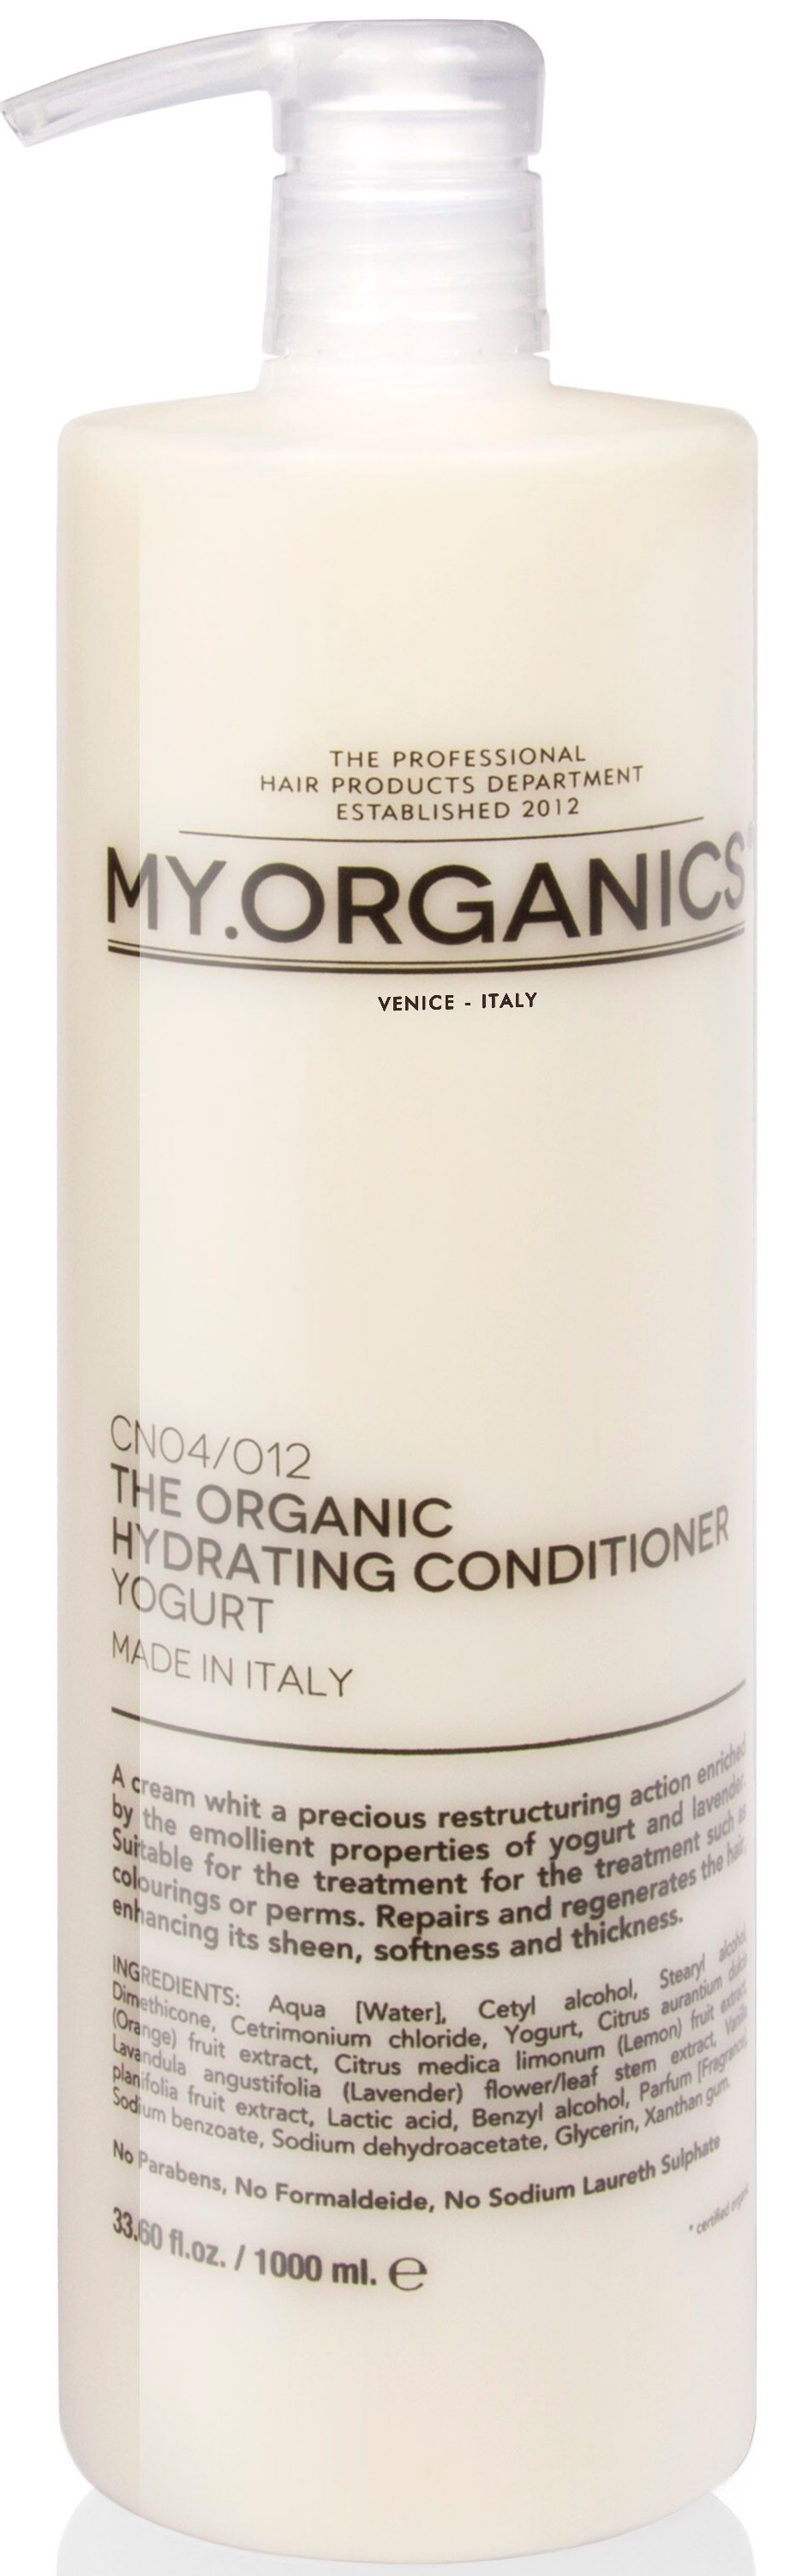 MY.ORGANICS The Organic Hydrating Conditioner Yogurt 1000ml